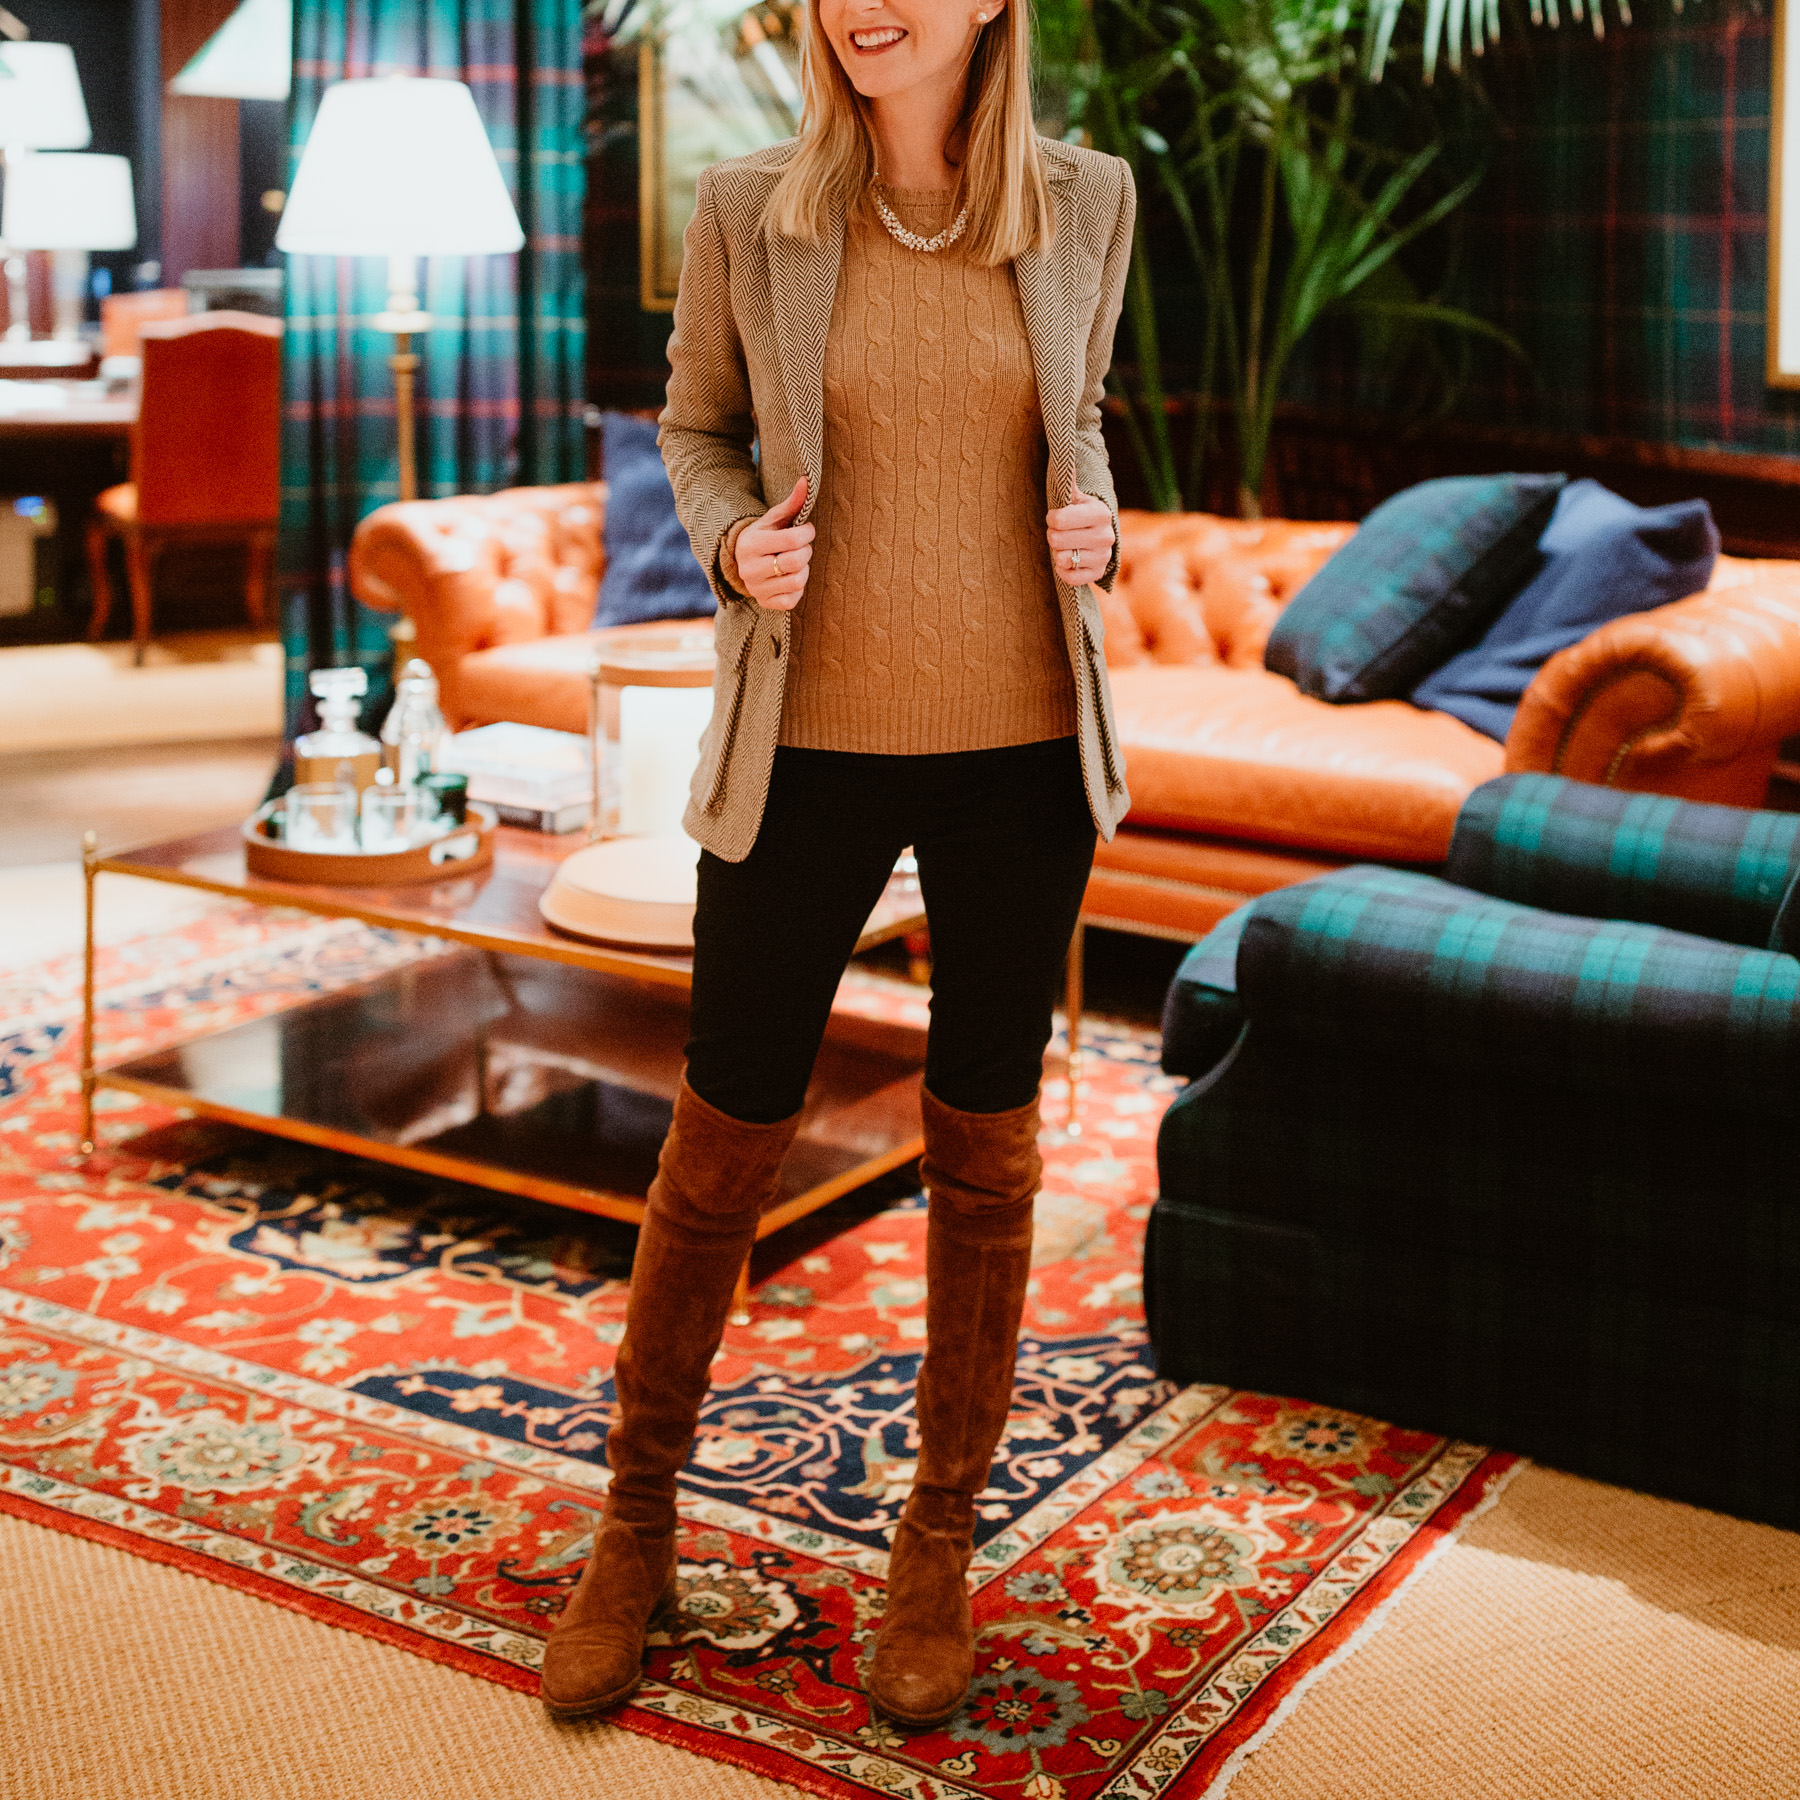 Kelly's Outfit:  Ralph Lauren Cable-Knit Sweater / Stuart Weitzman Boots / Halogen Seamed Leggings / Sparkly Necklace